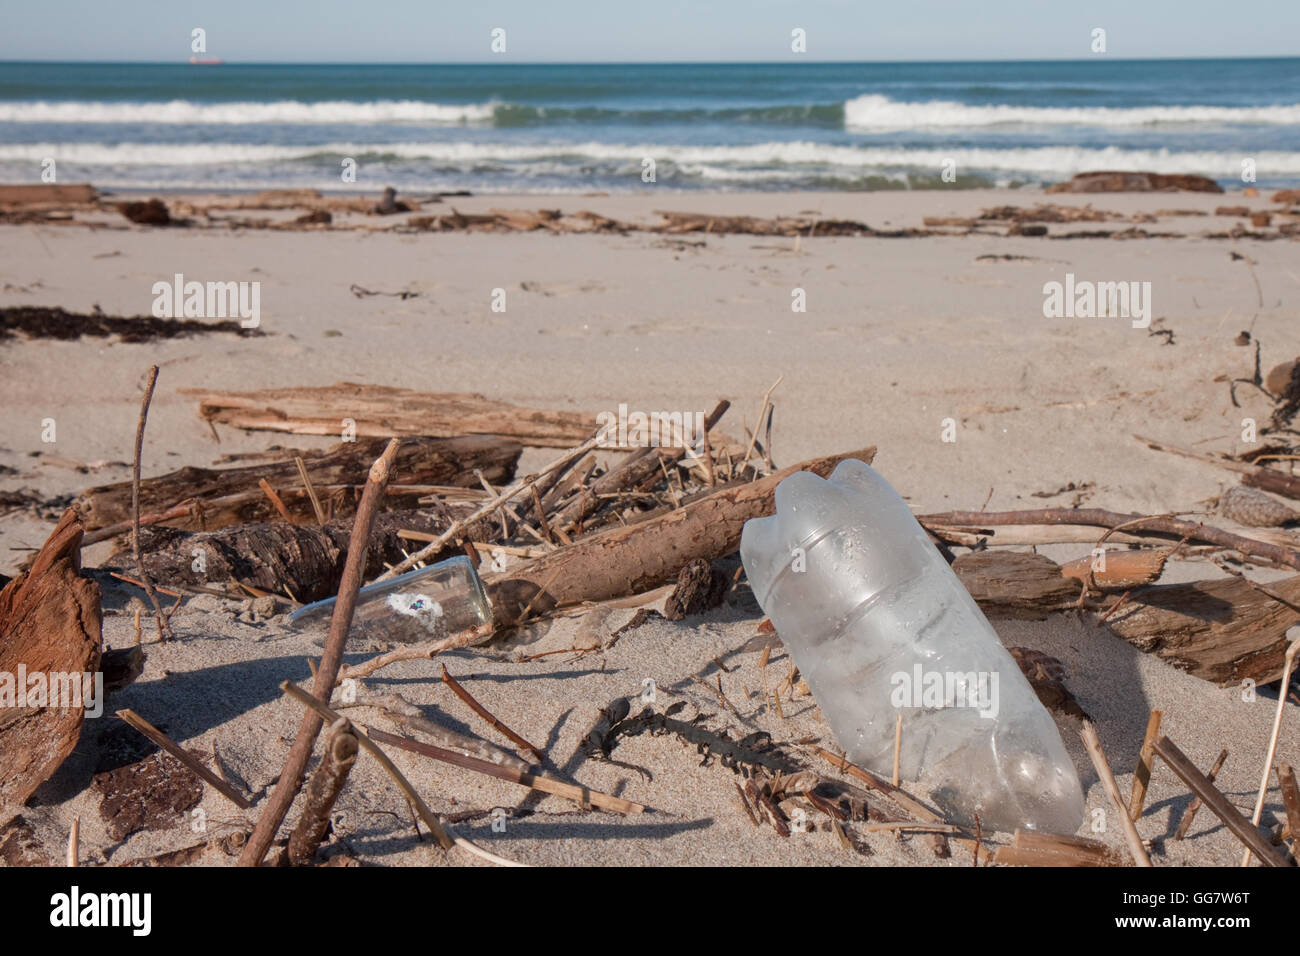 bottles and other plastic littered on a beach in Gisborne, New Zealand - Stock Image